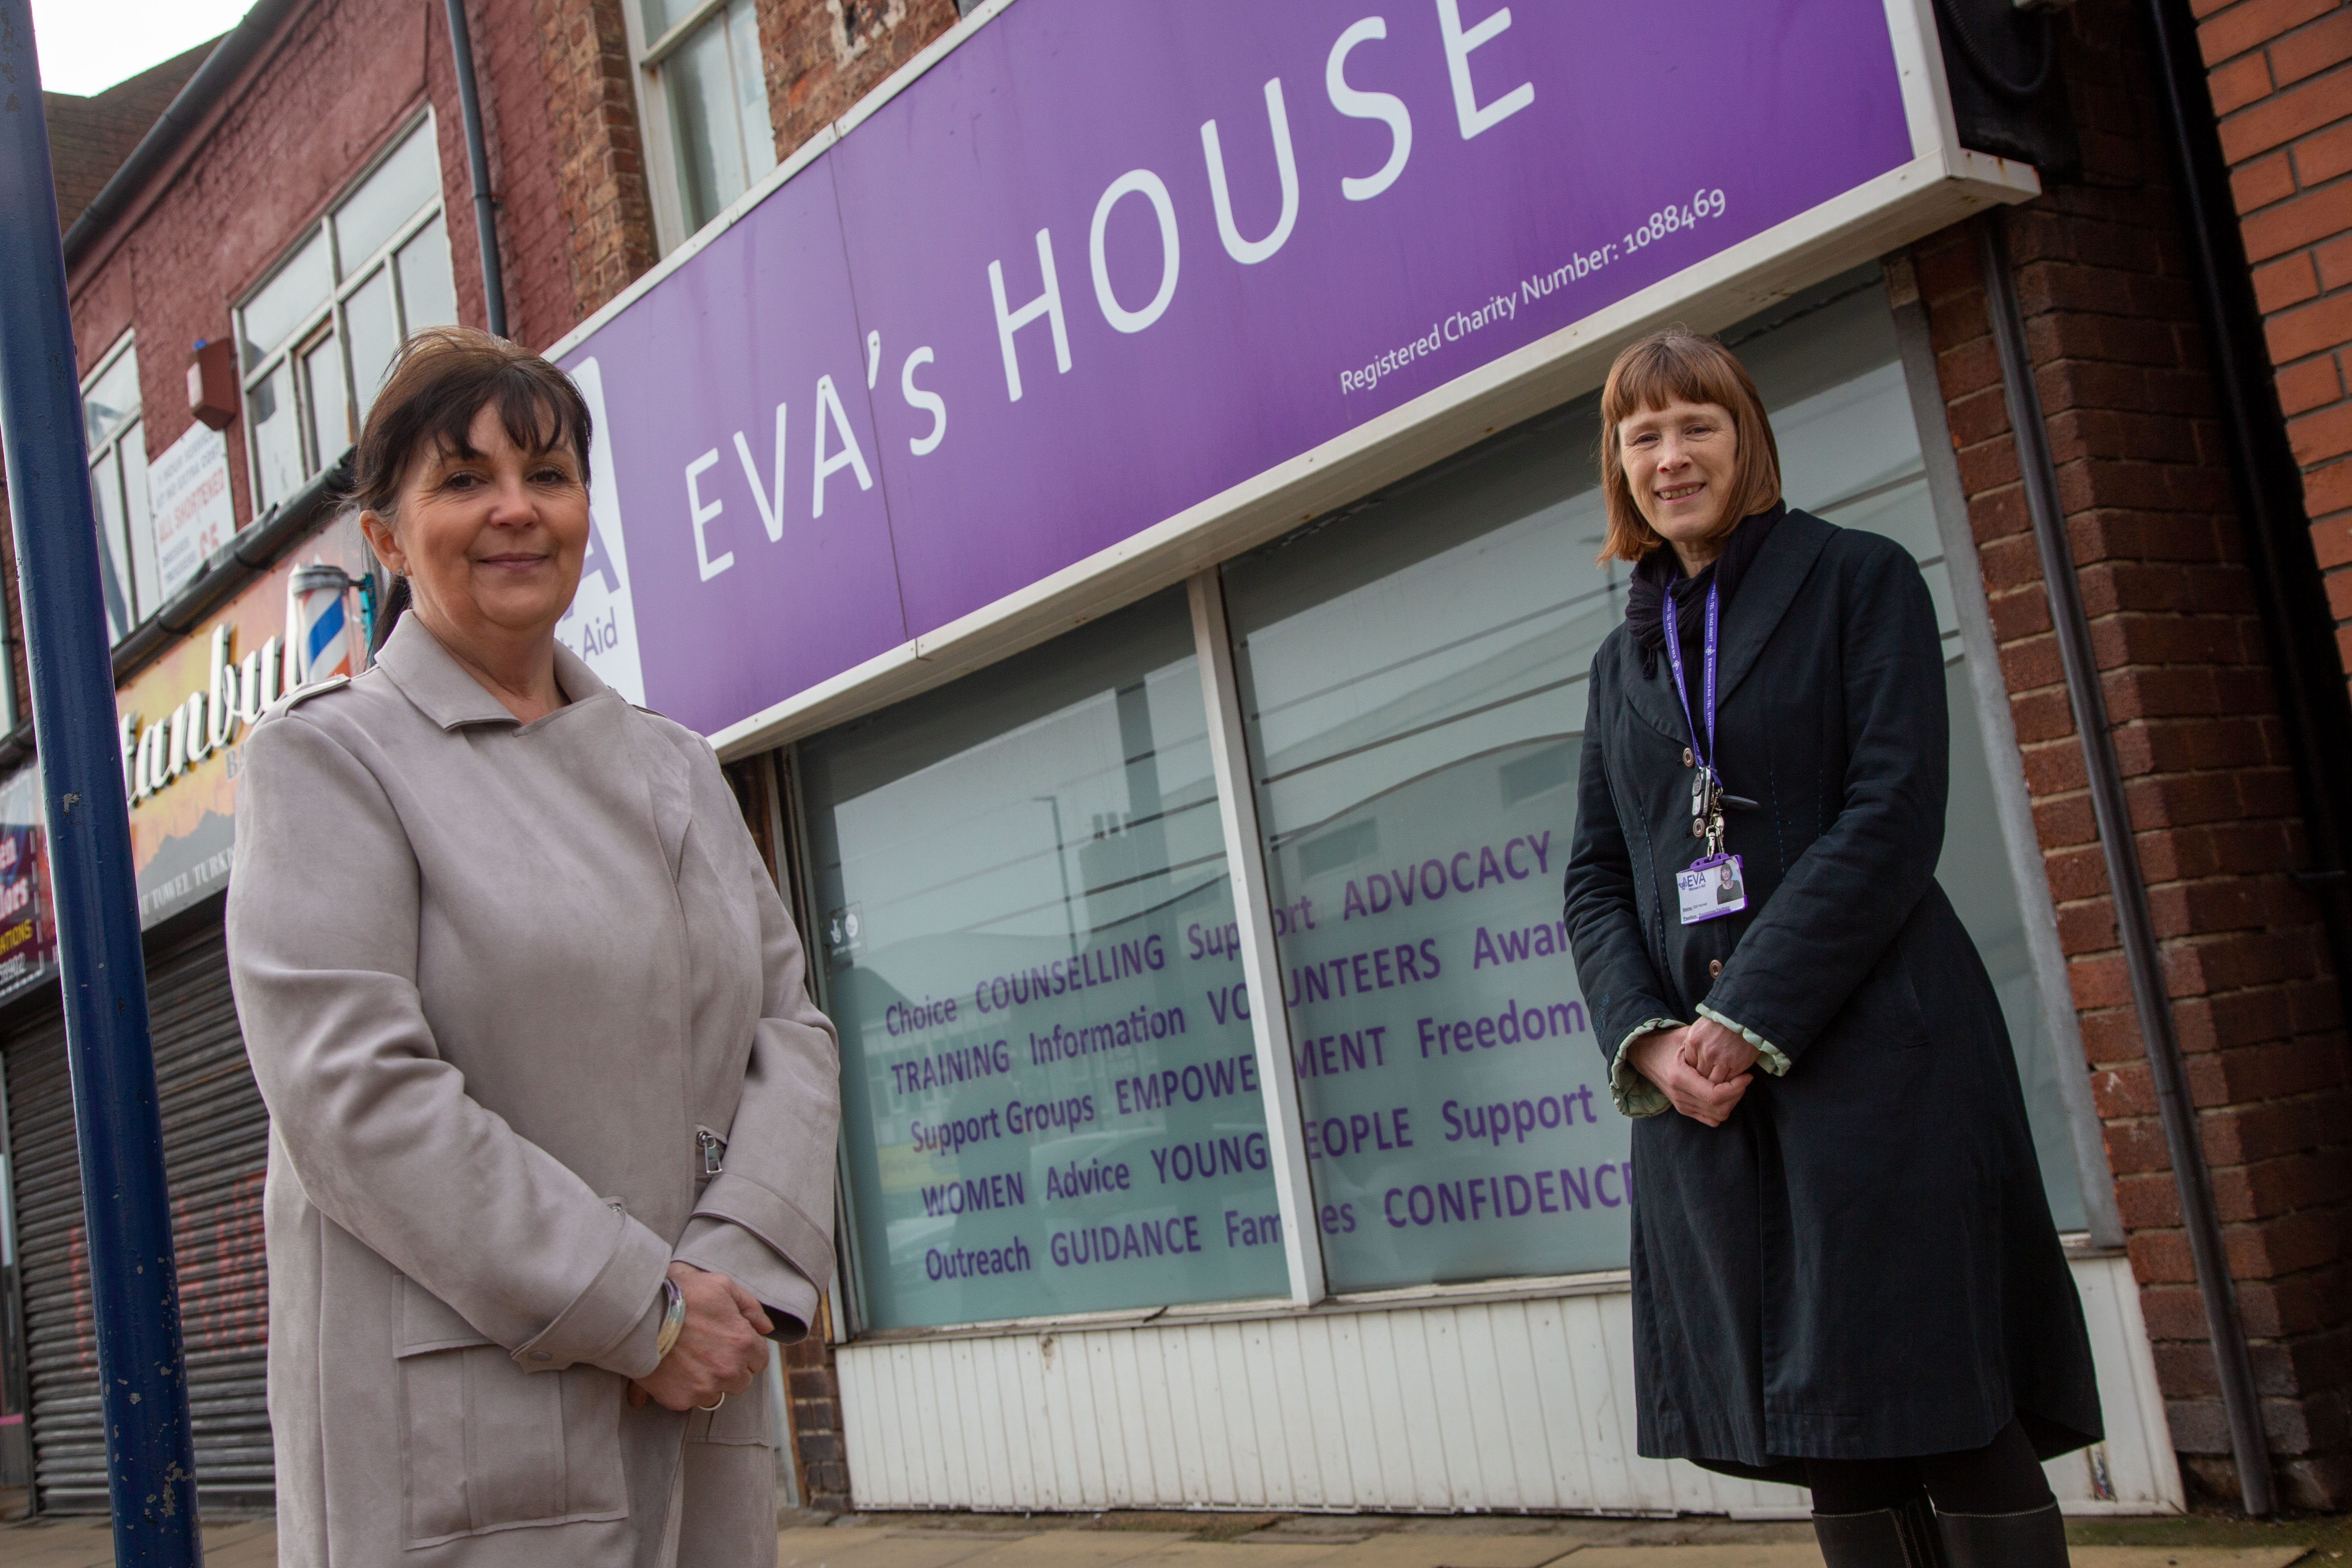 Gill Horner and Sarah Charlton standing outside Eve's House in Redcar